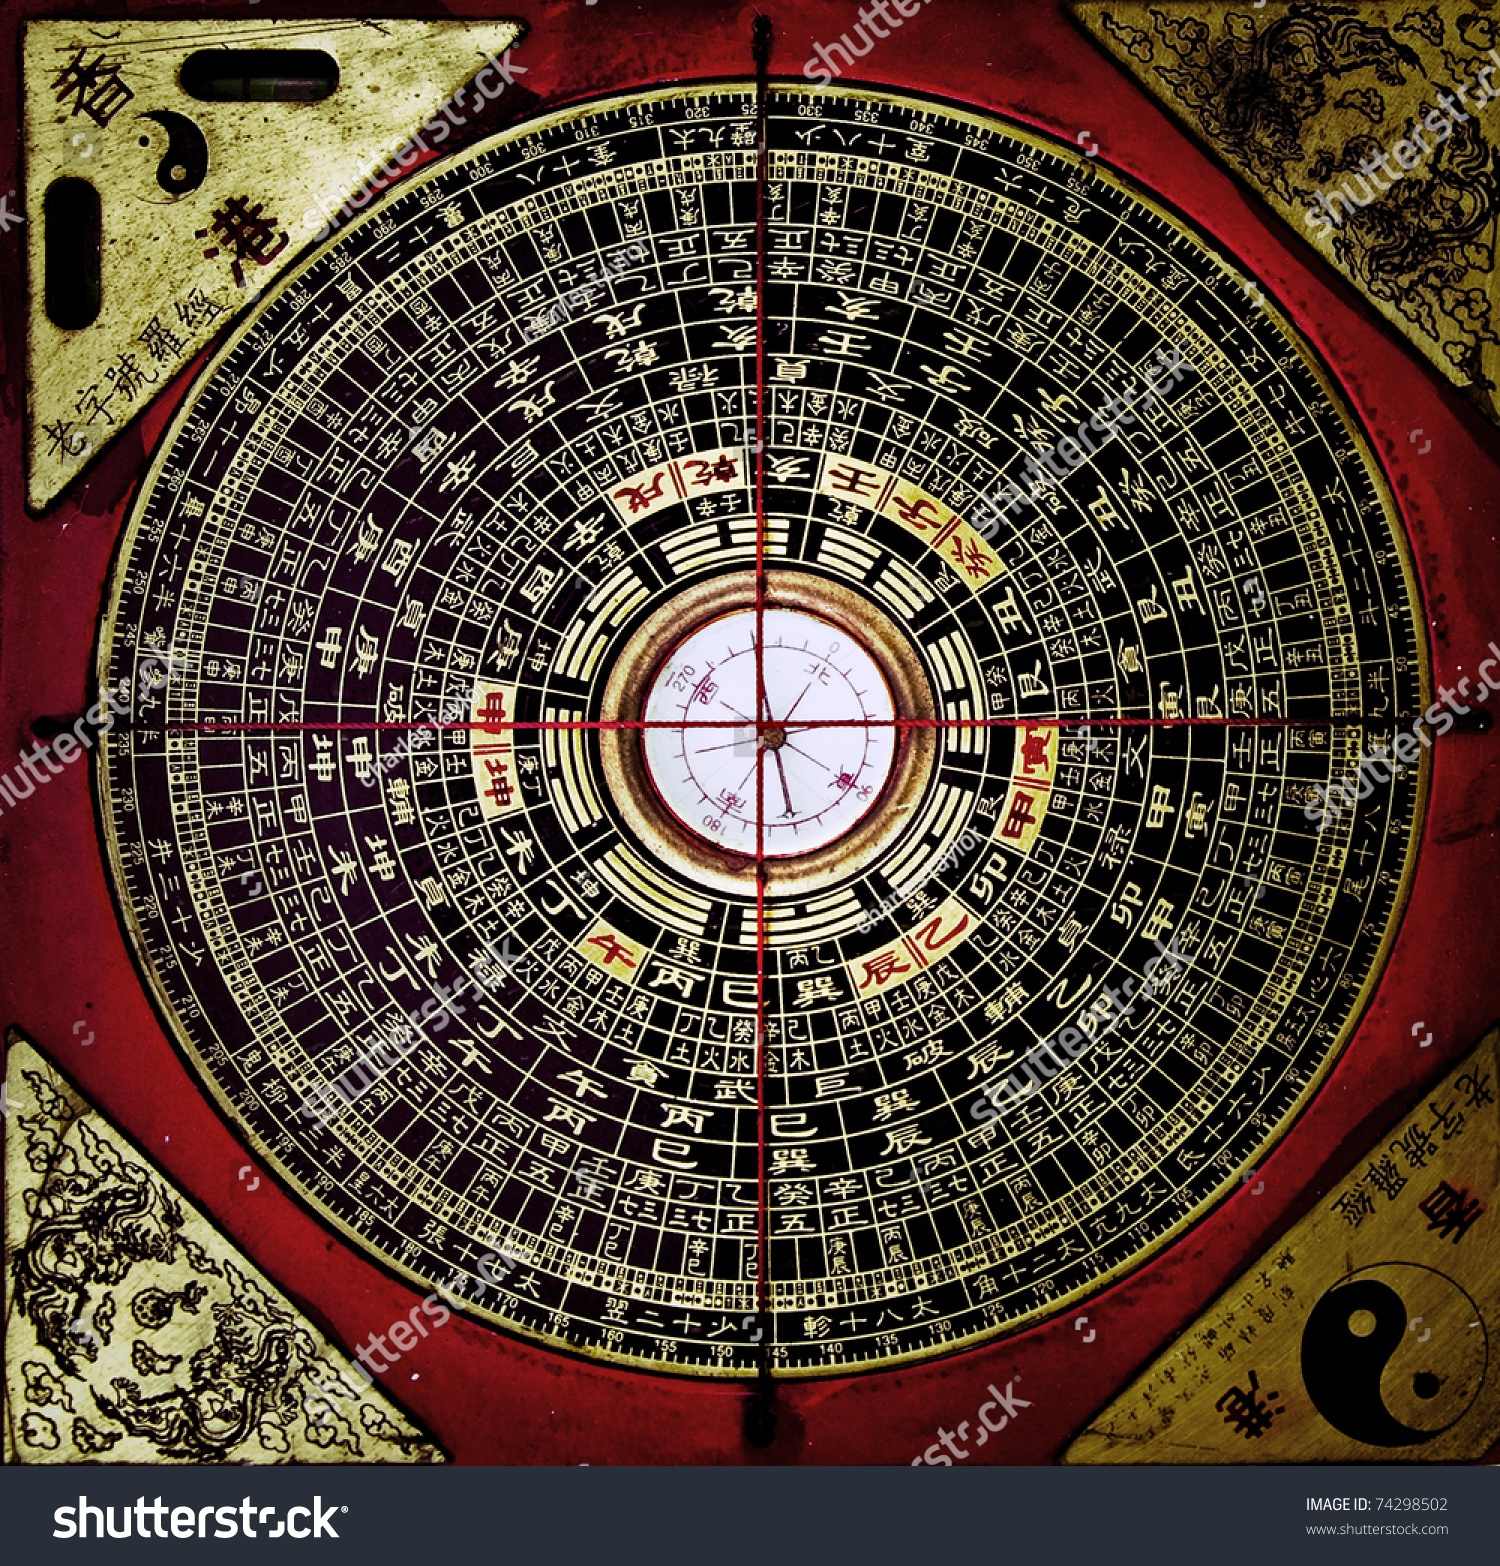 antique chinese compass for feng shui preview save to a lightbox chinese feng shui compass